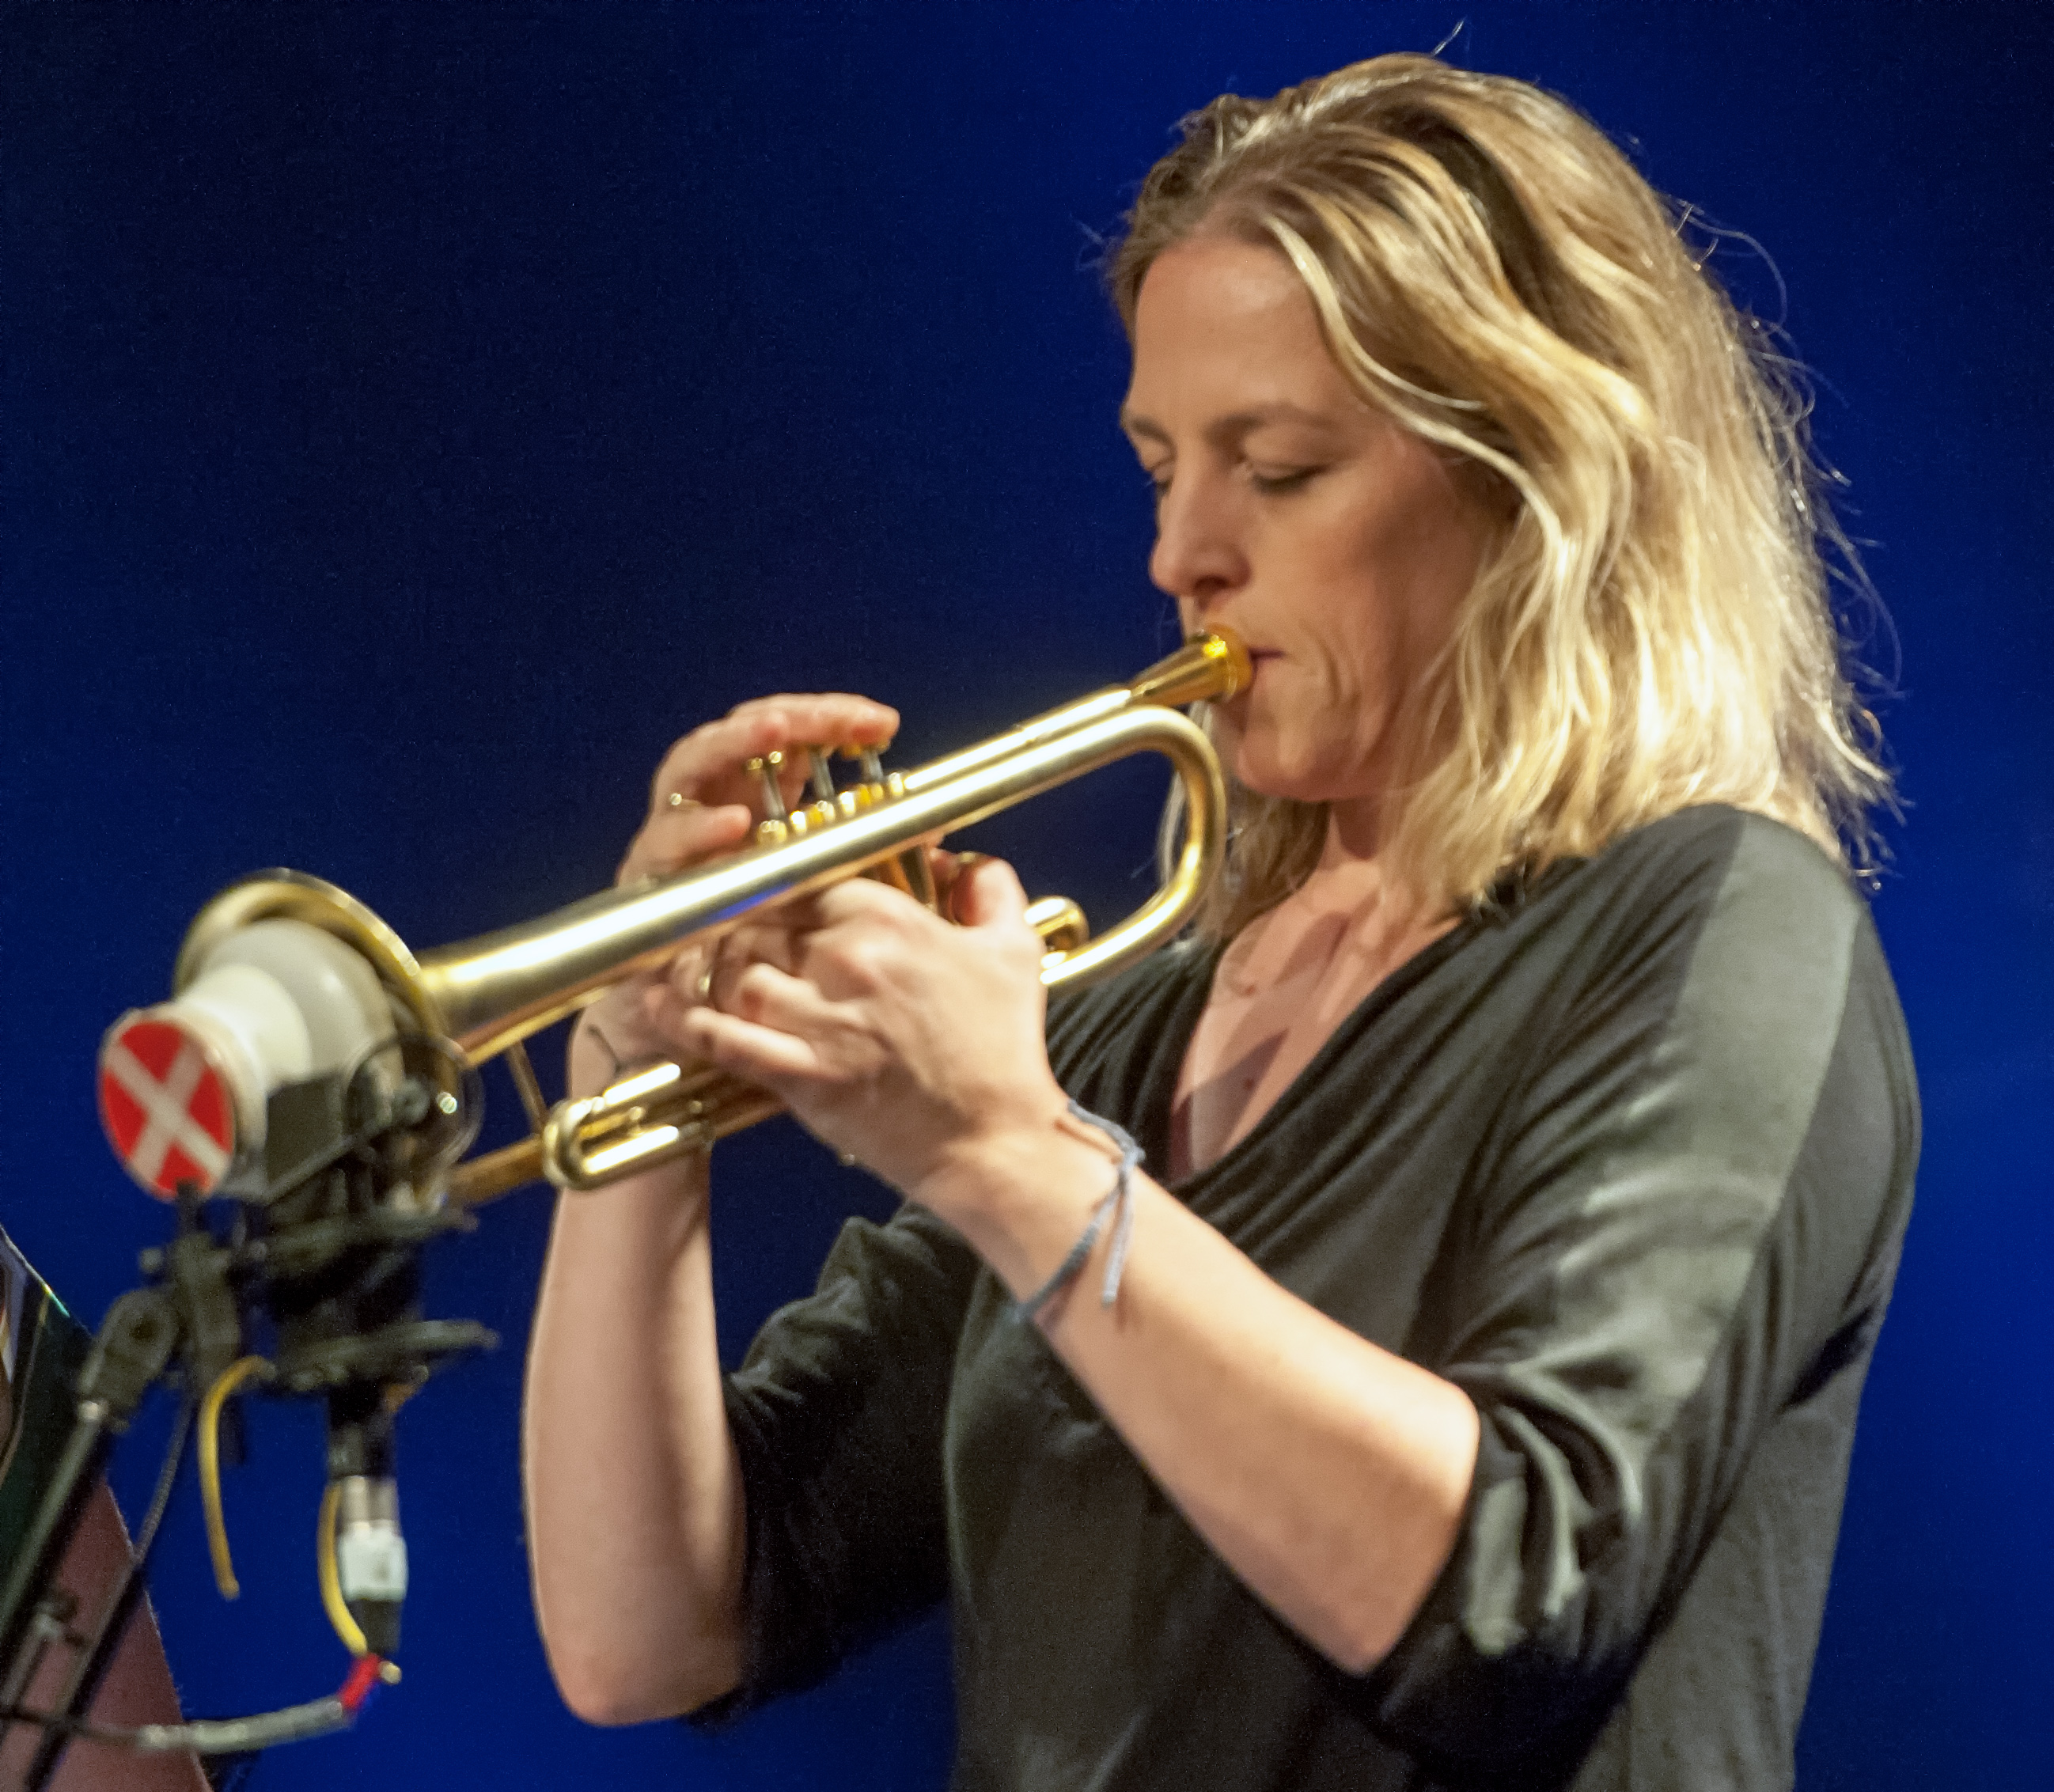 Ingrid jensen with christine jensen at the montreal international jazz festival 2013